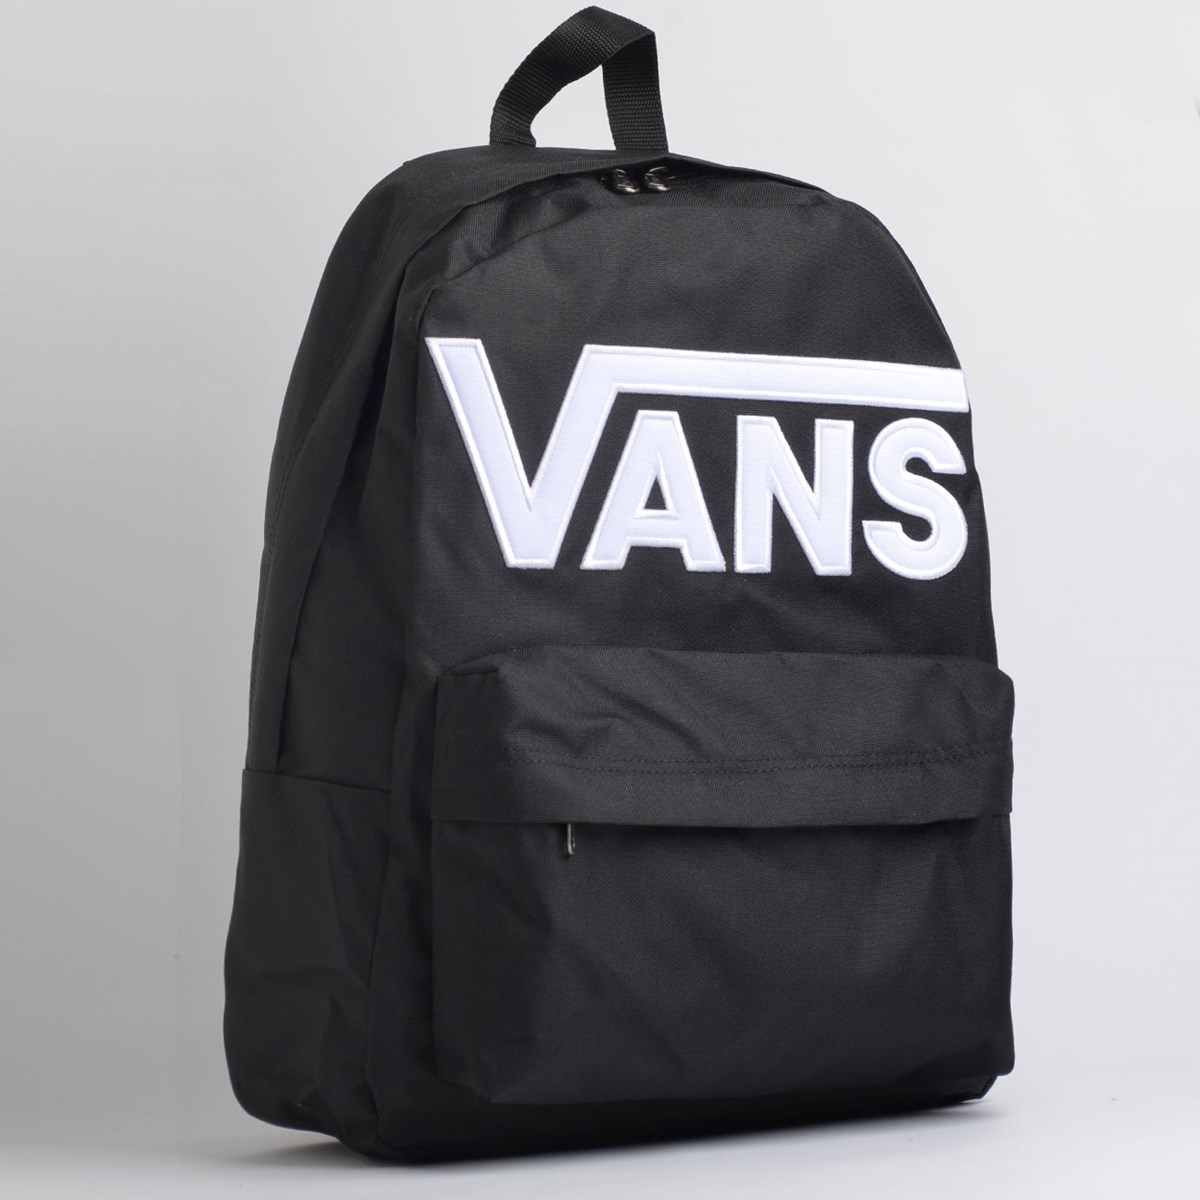 Mochila Vans Old Skool III Backpack Black White VN0A3I6RY28